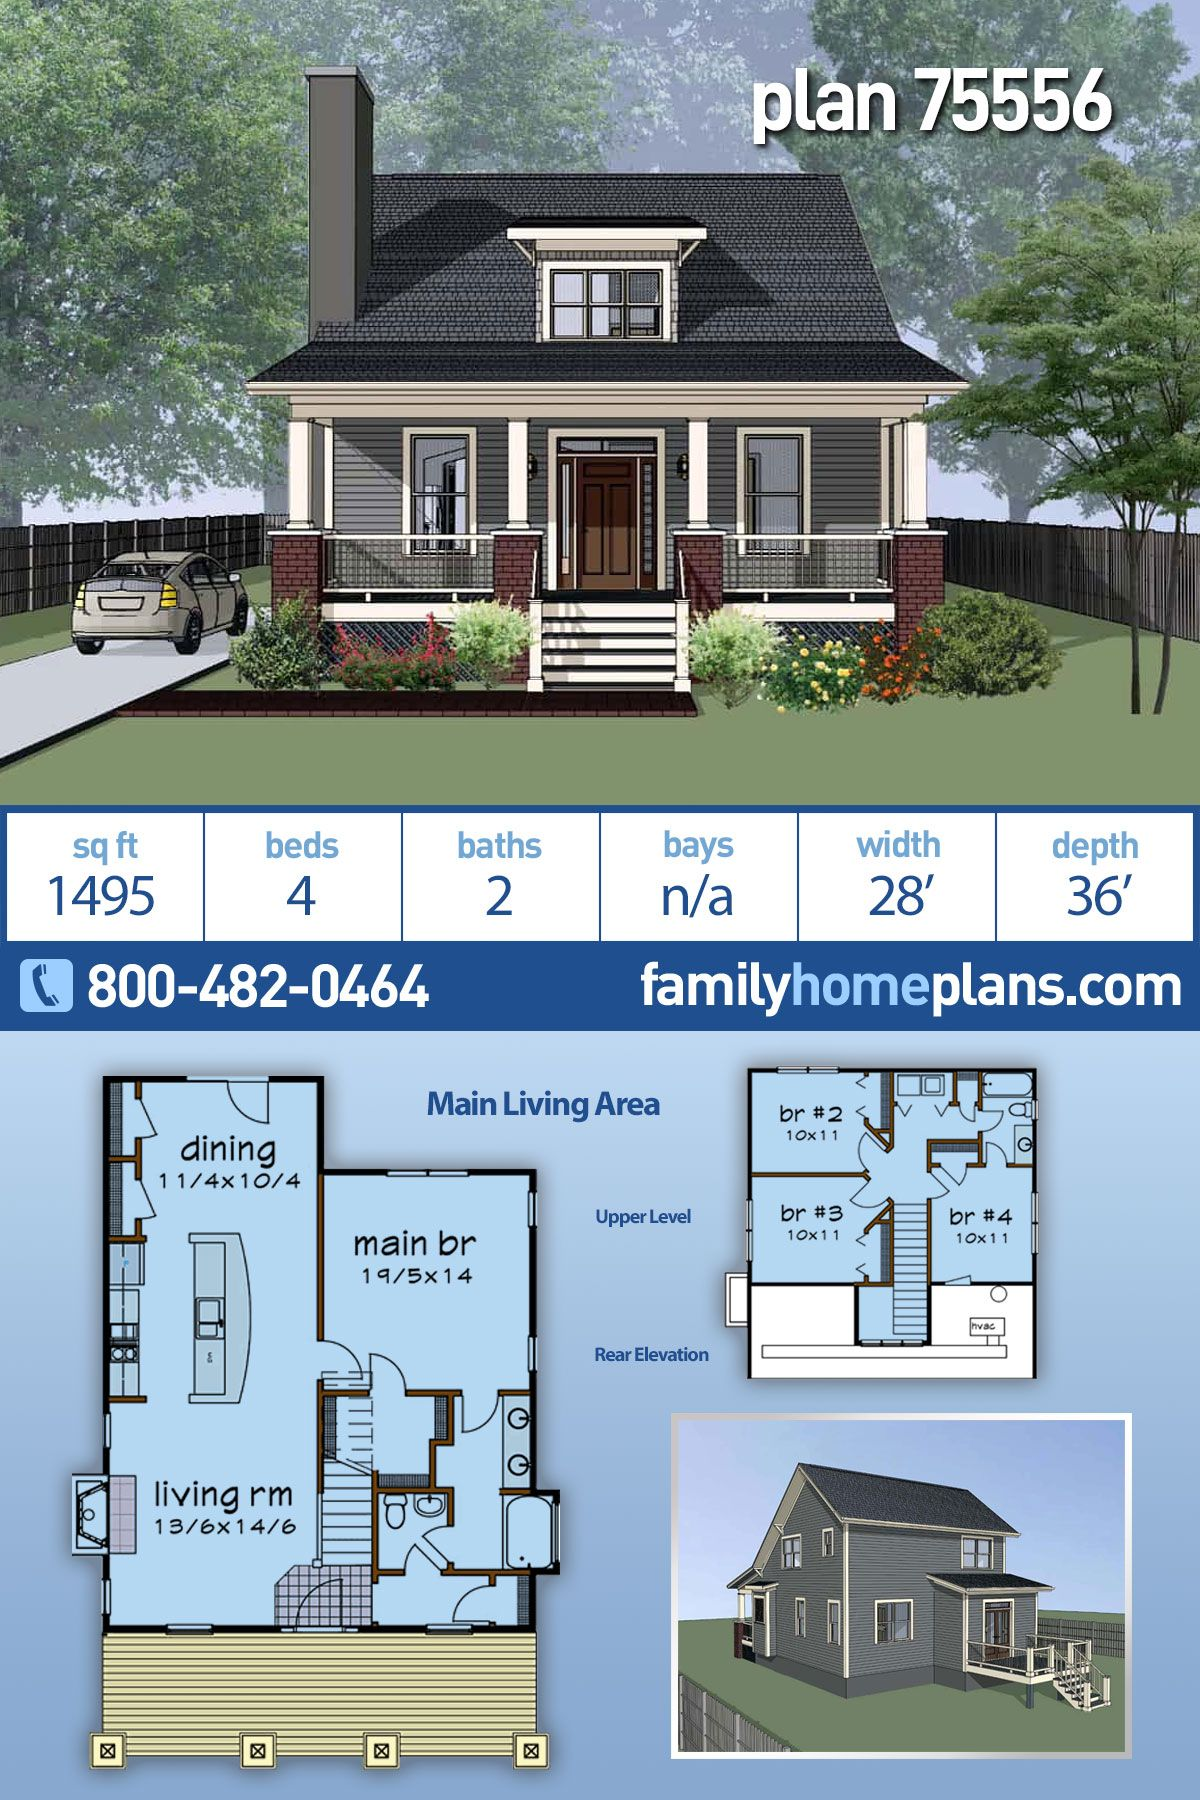 Cottage Style House Plan 75556 With 4 Bed 2 Bath Cottage Style House Plans Cottage Style Homes Craftsman House Plans